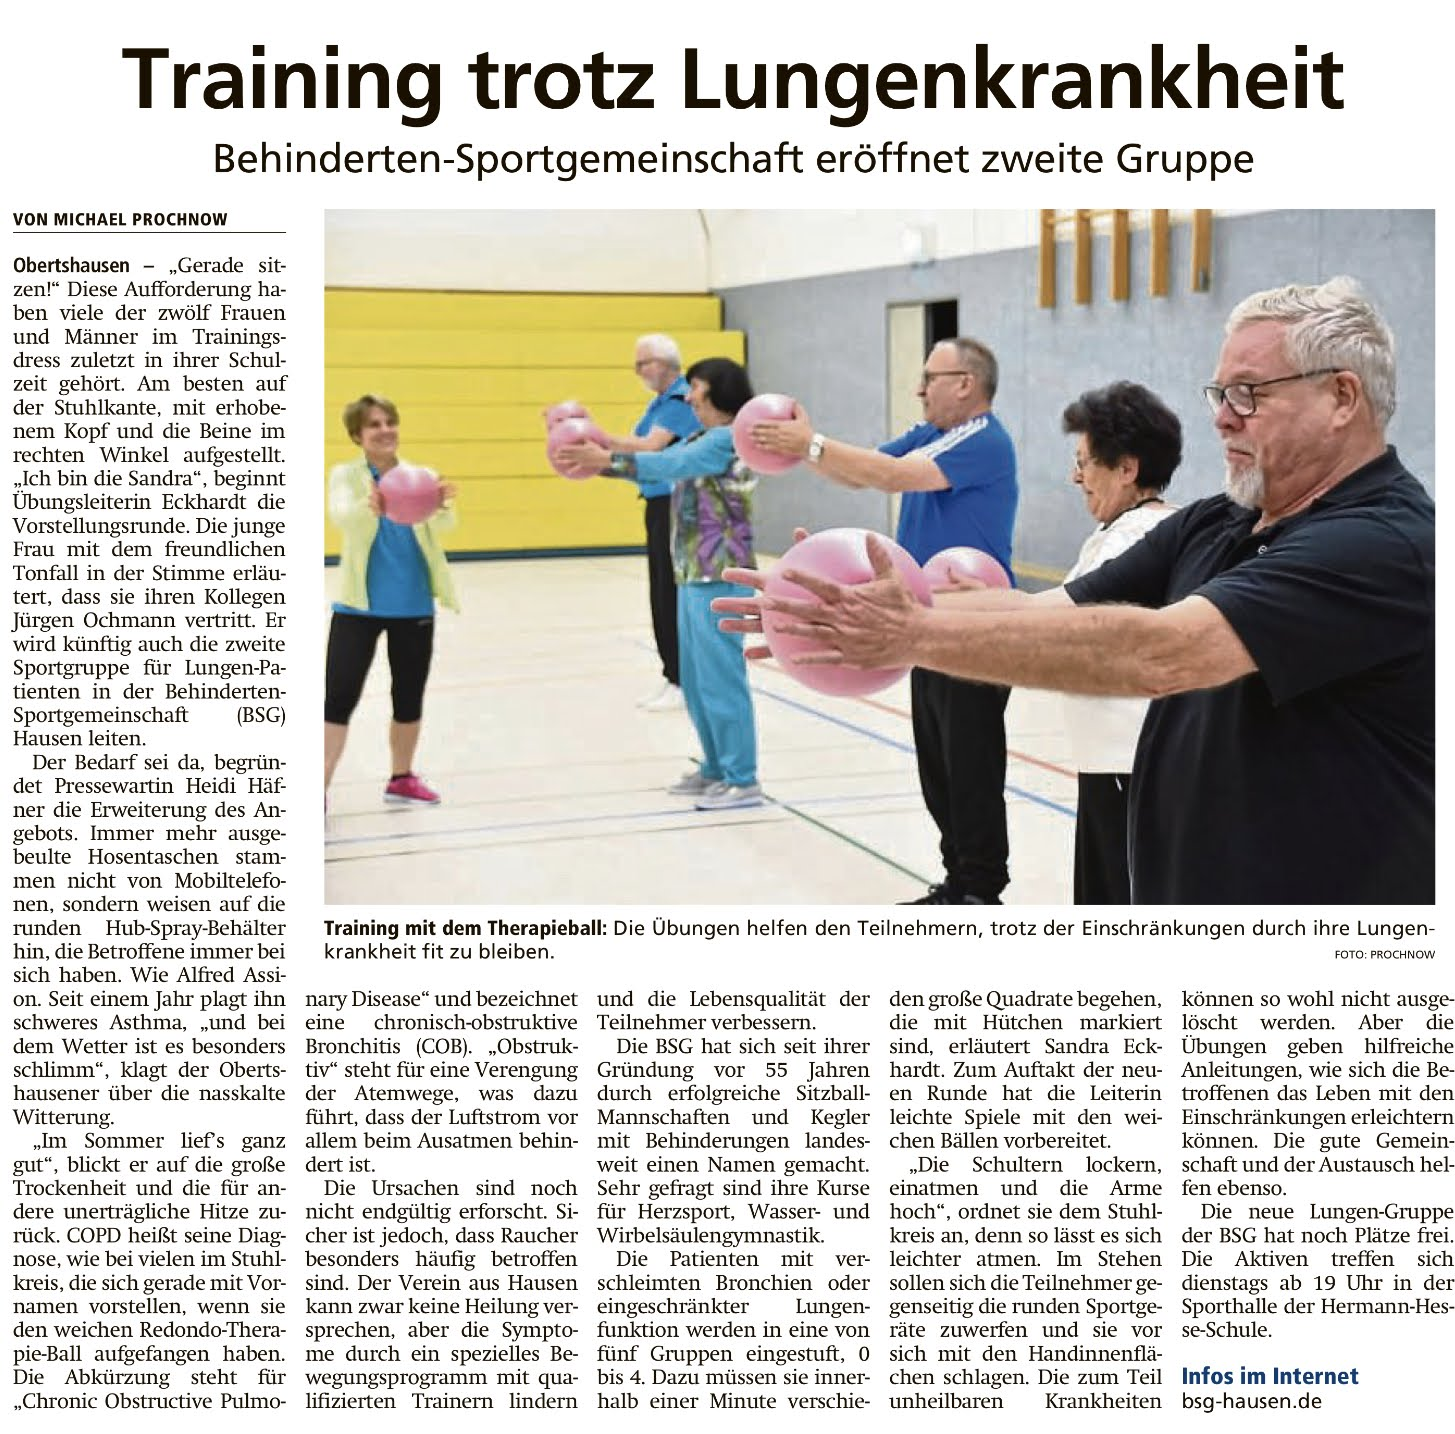 Lungensport - OP - 07-11-2019